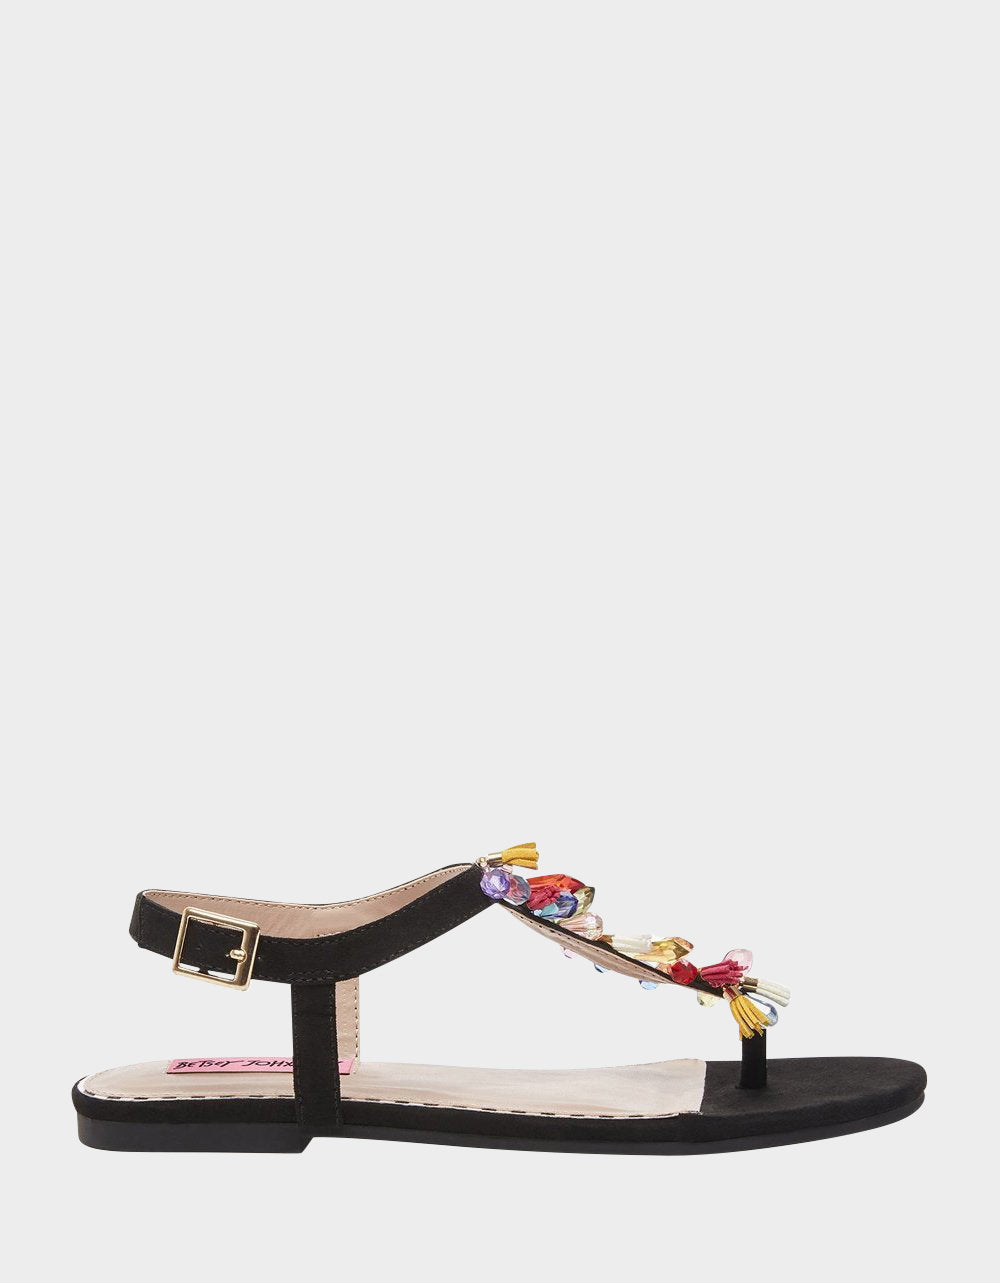 ROSITA BLACK MULTI - SHOES - Betsey Johnson